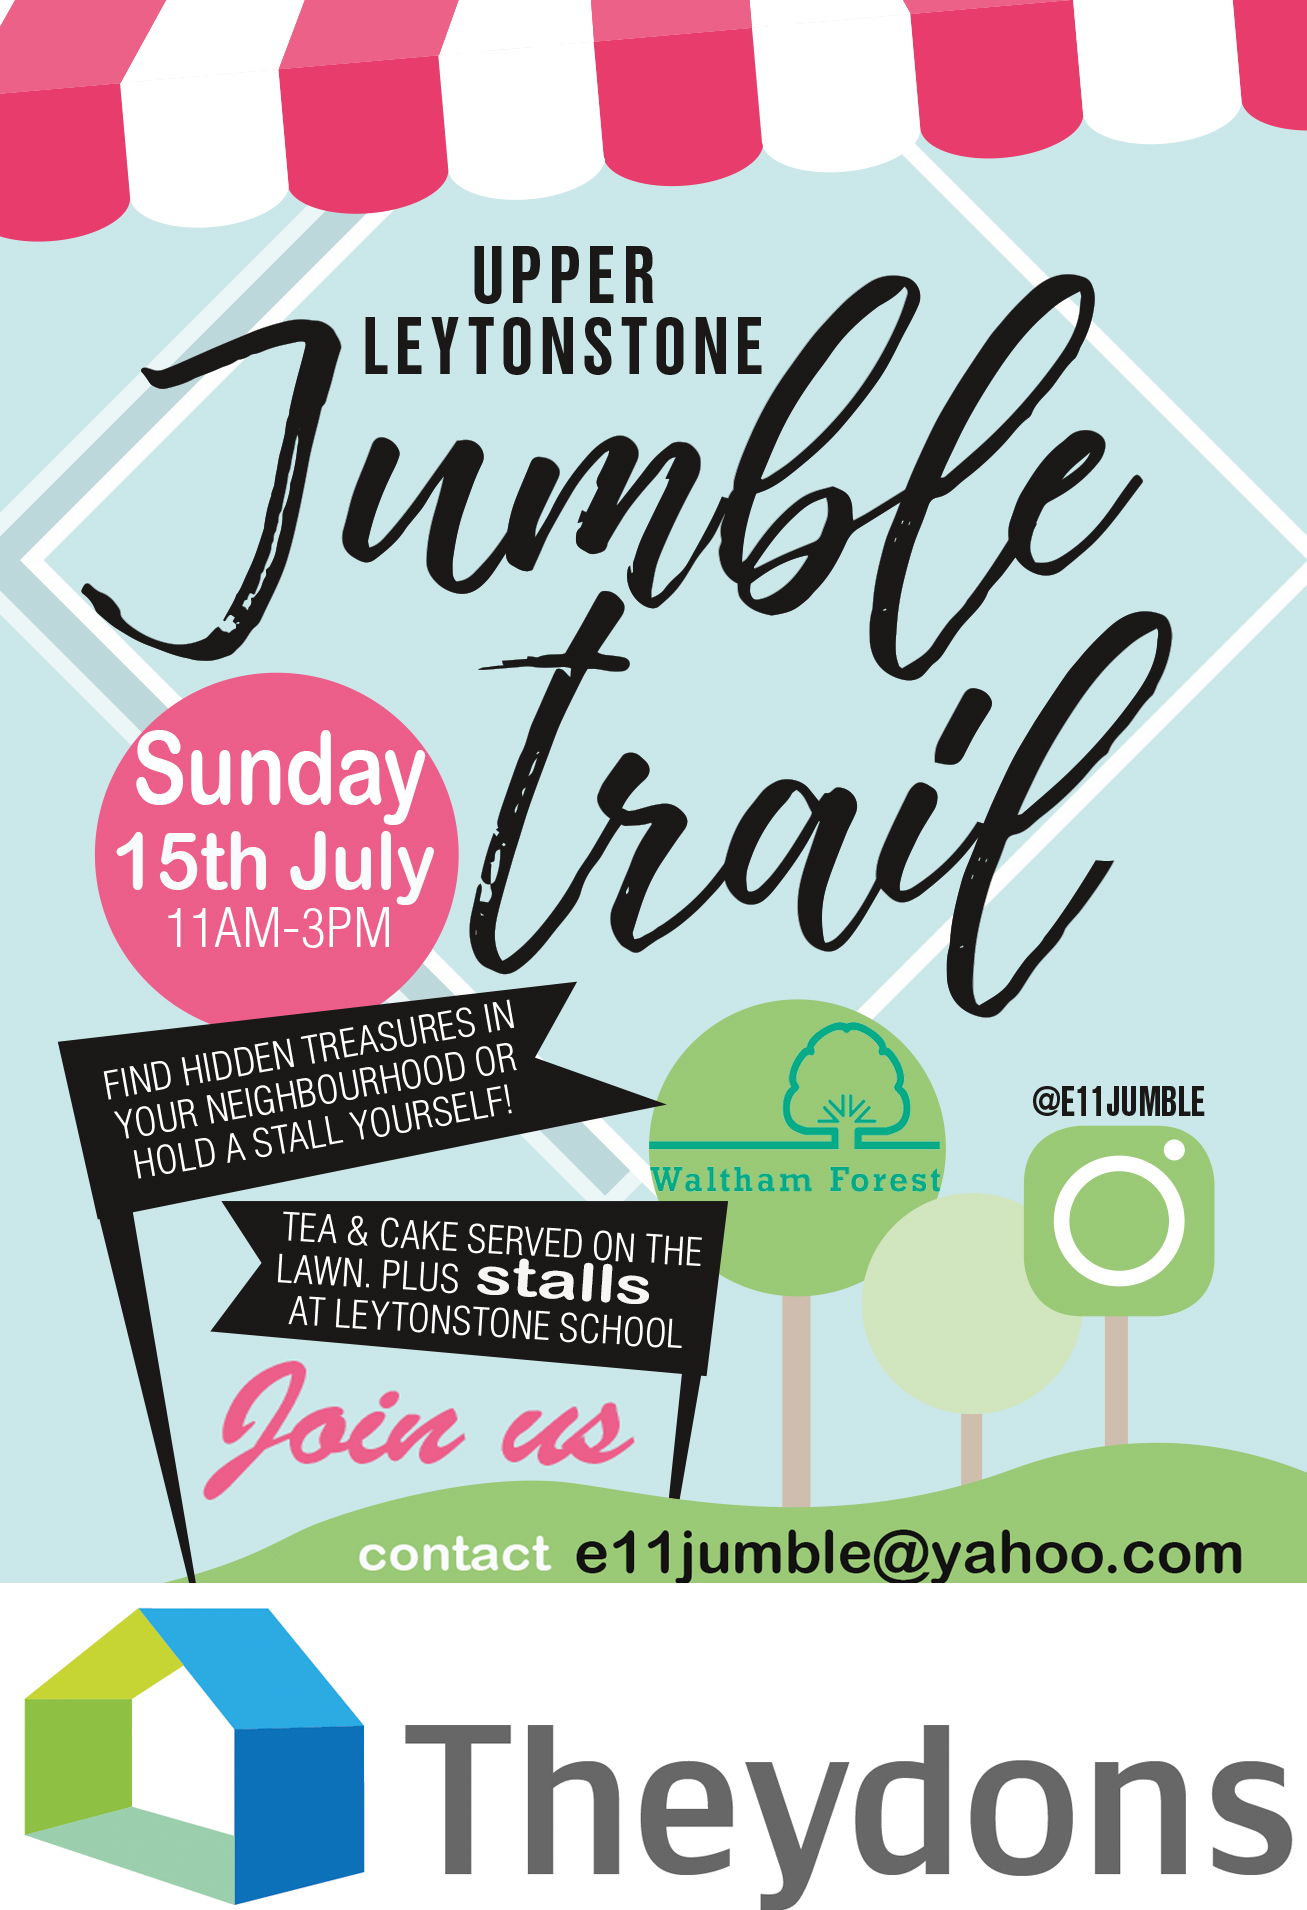 UPPER LEYTONSTONE JUMBLE TRAIL